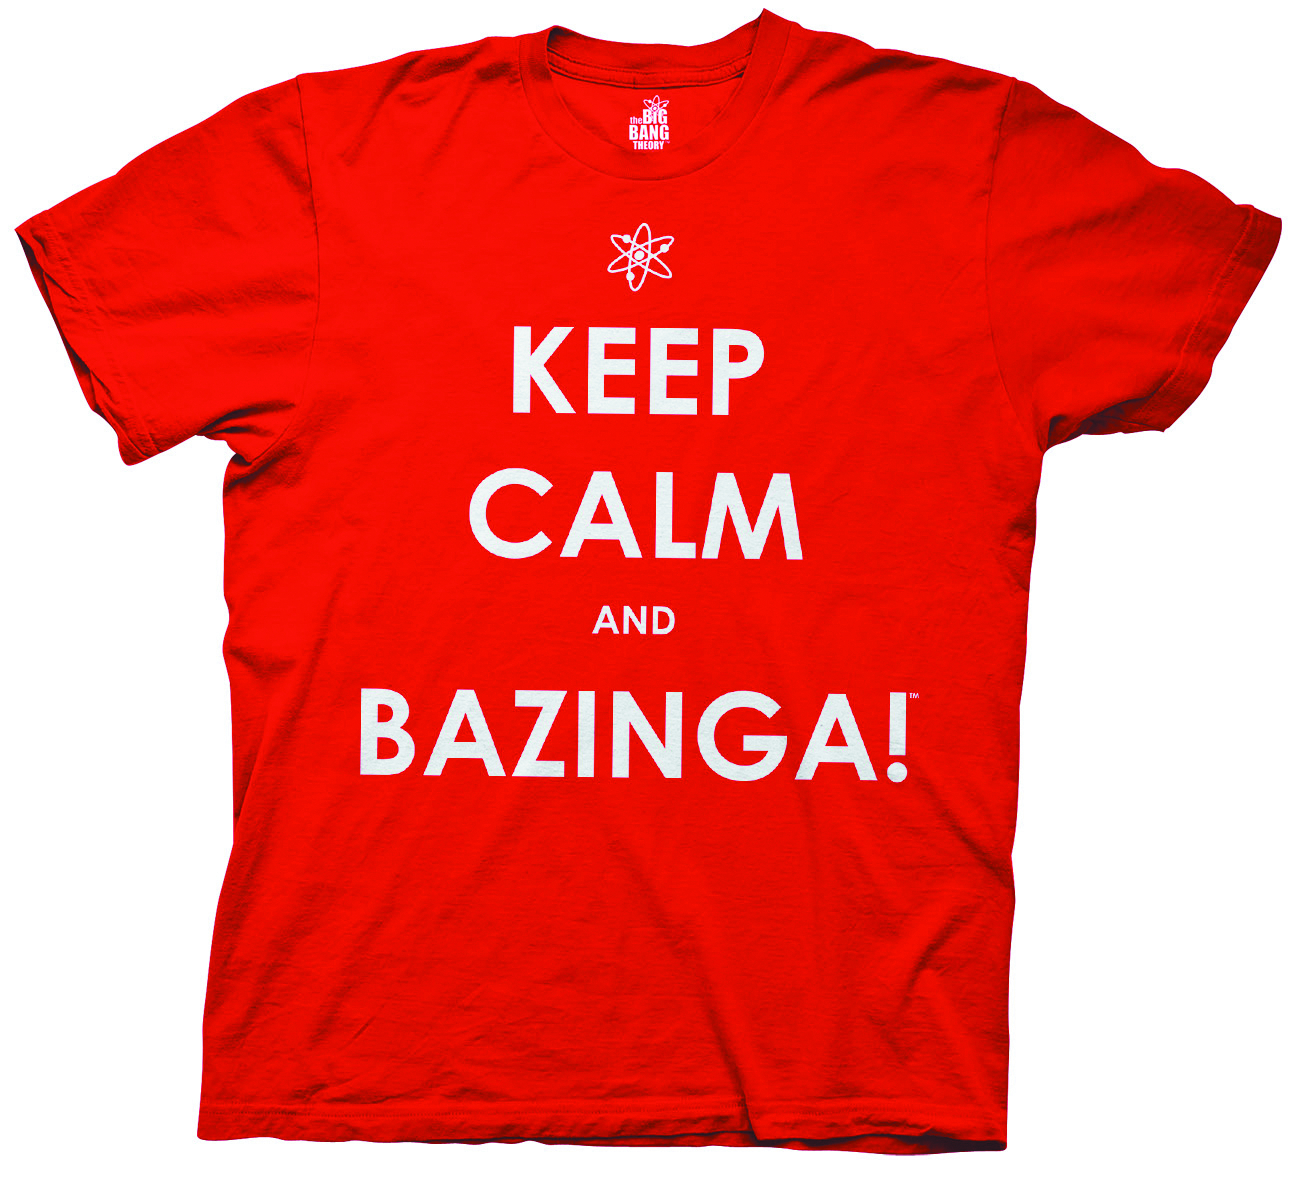 KEEP CALM BAZINGA RED T/S XXL